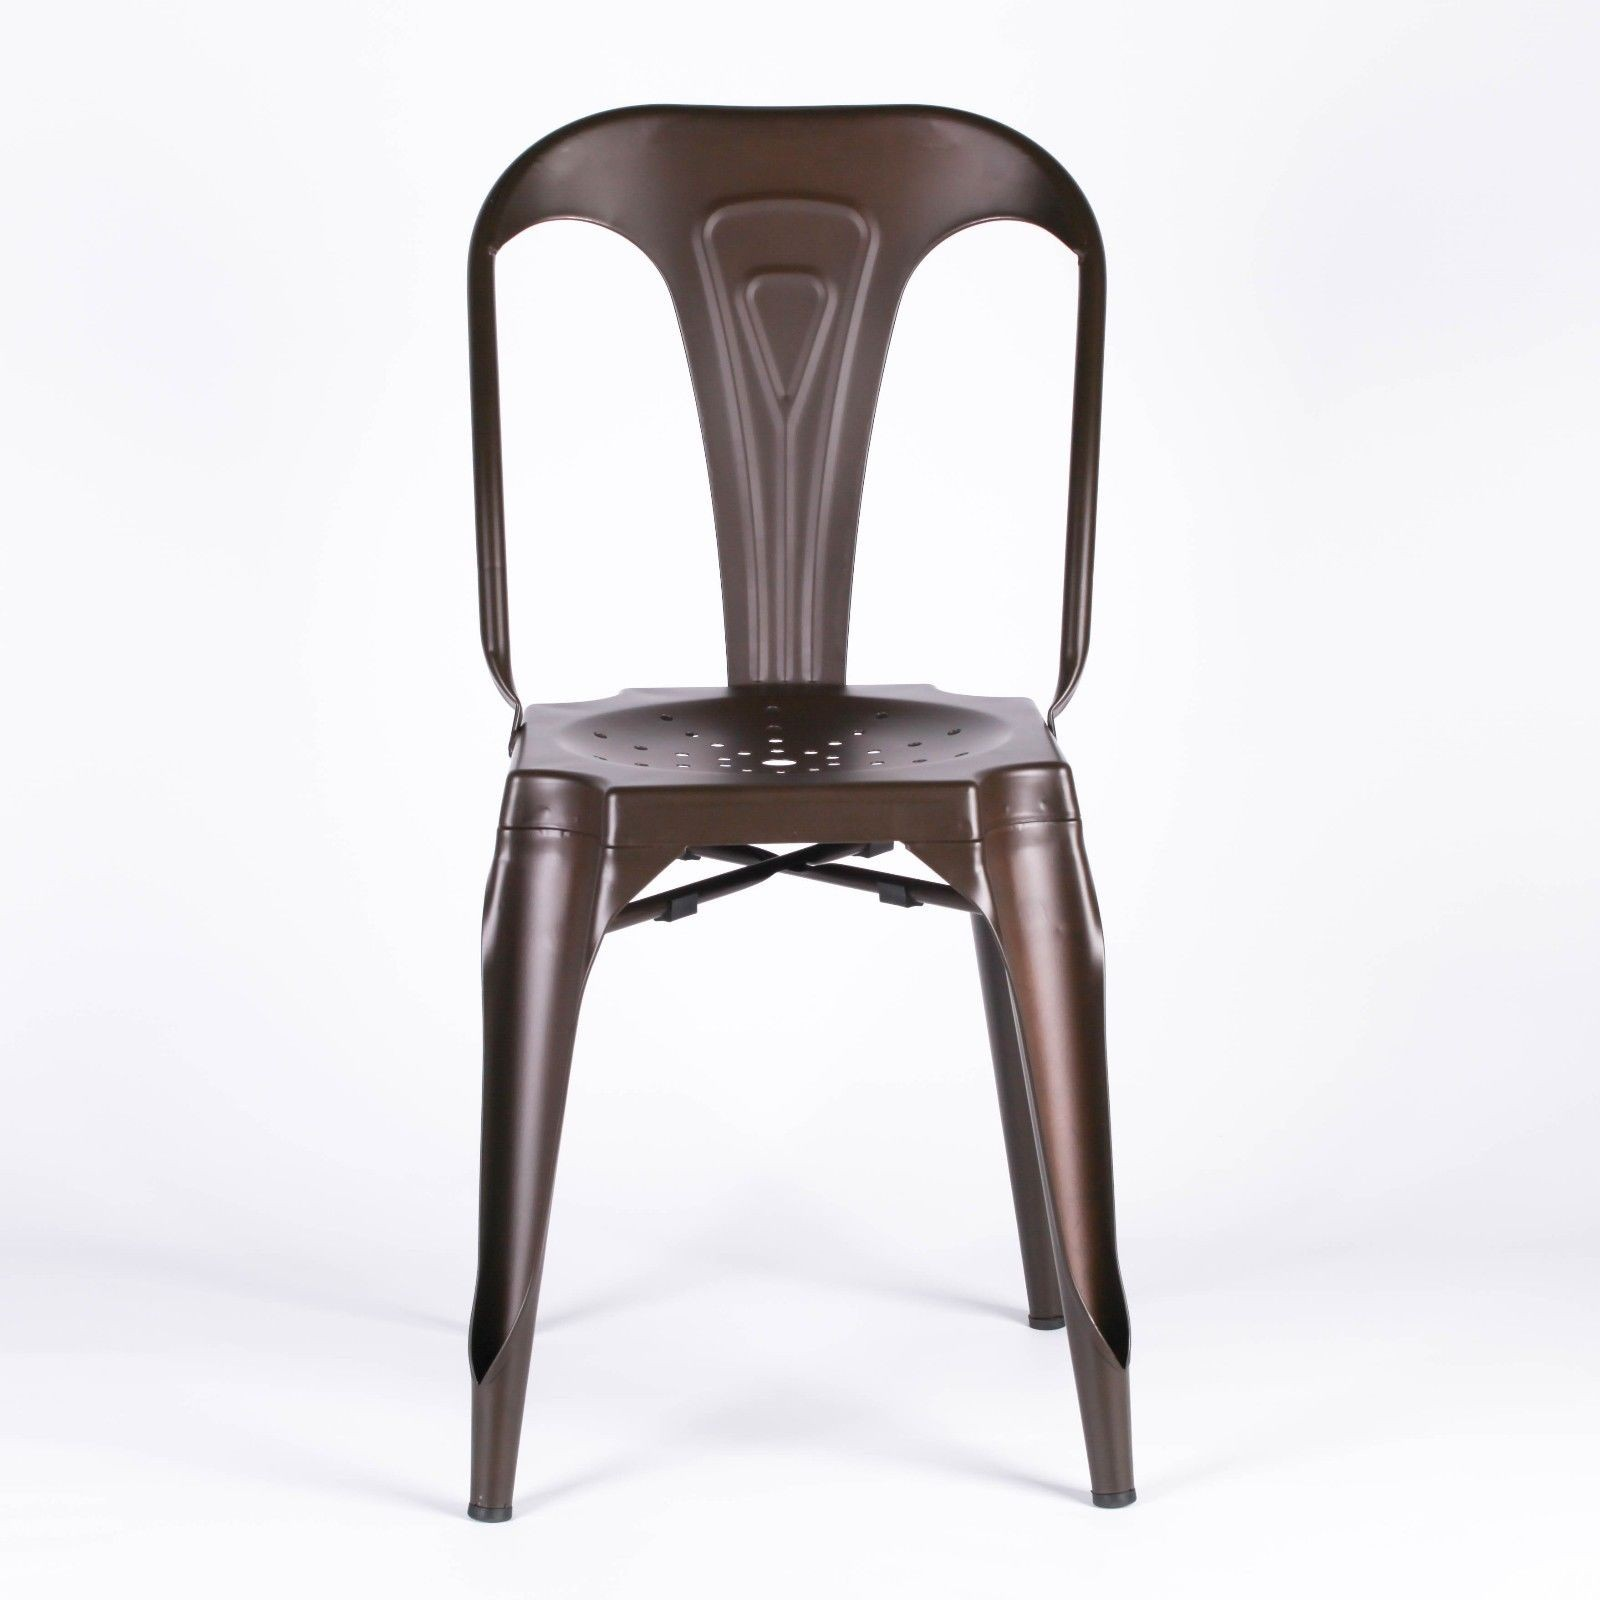 Industrial Look Chairs Industrial Style Metal Zinc Effect Dining Chair Furniture